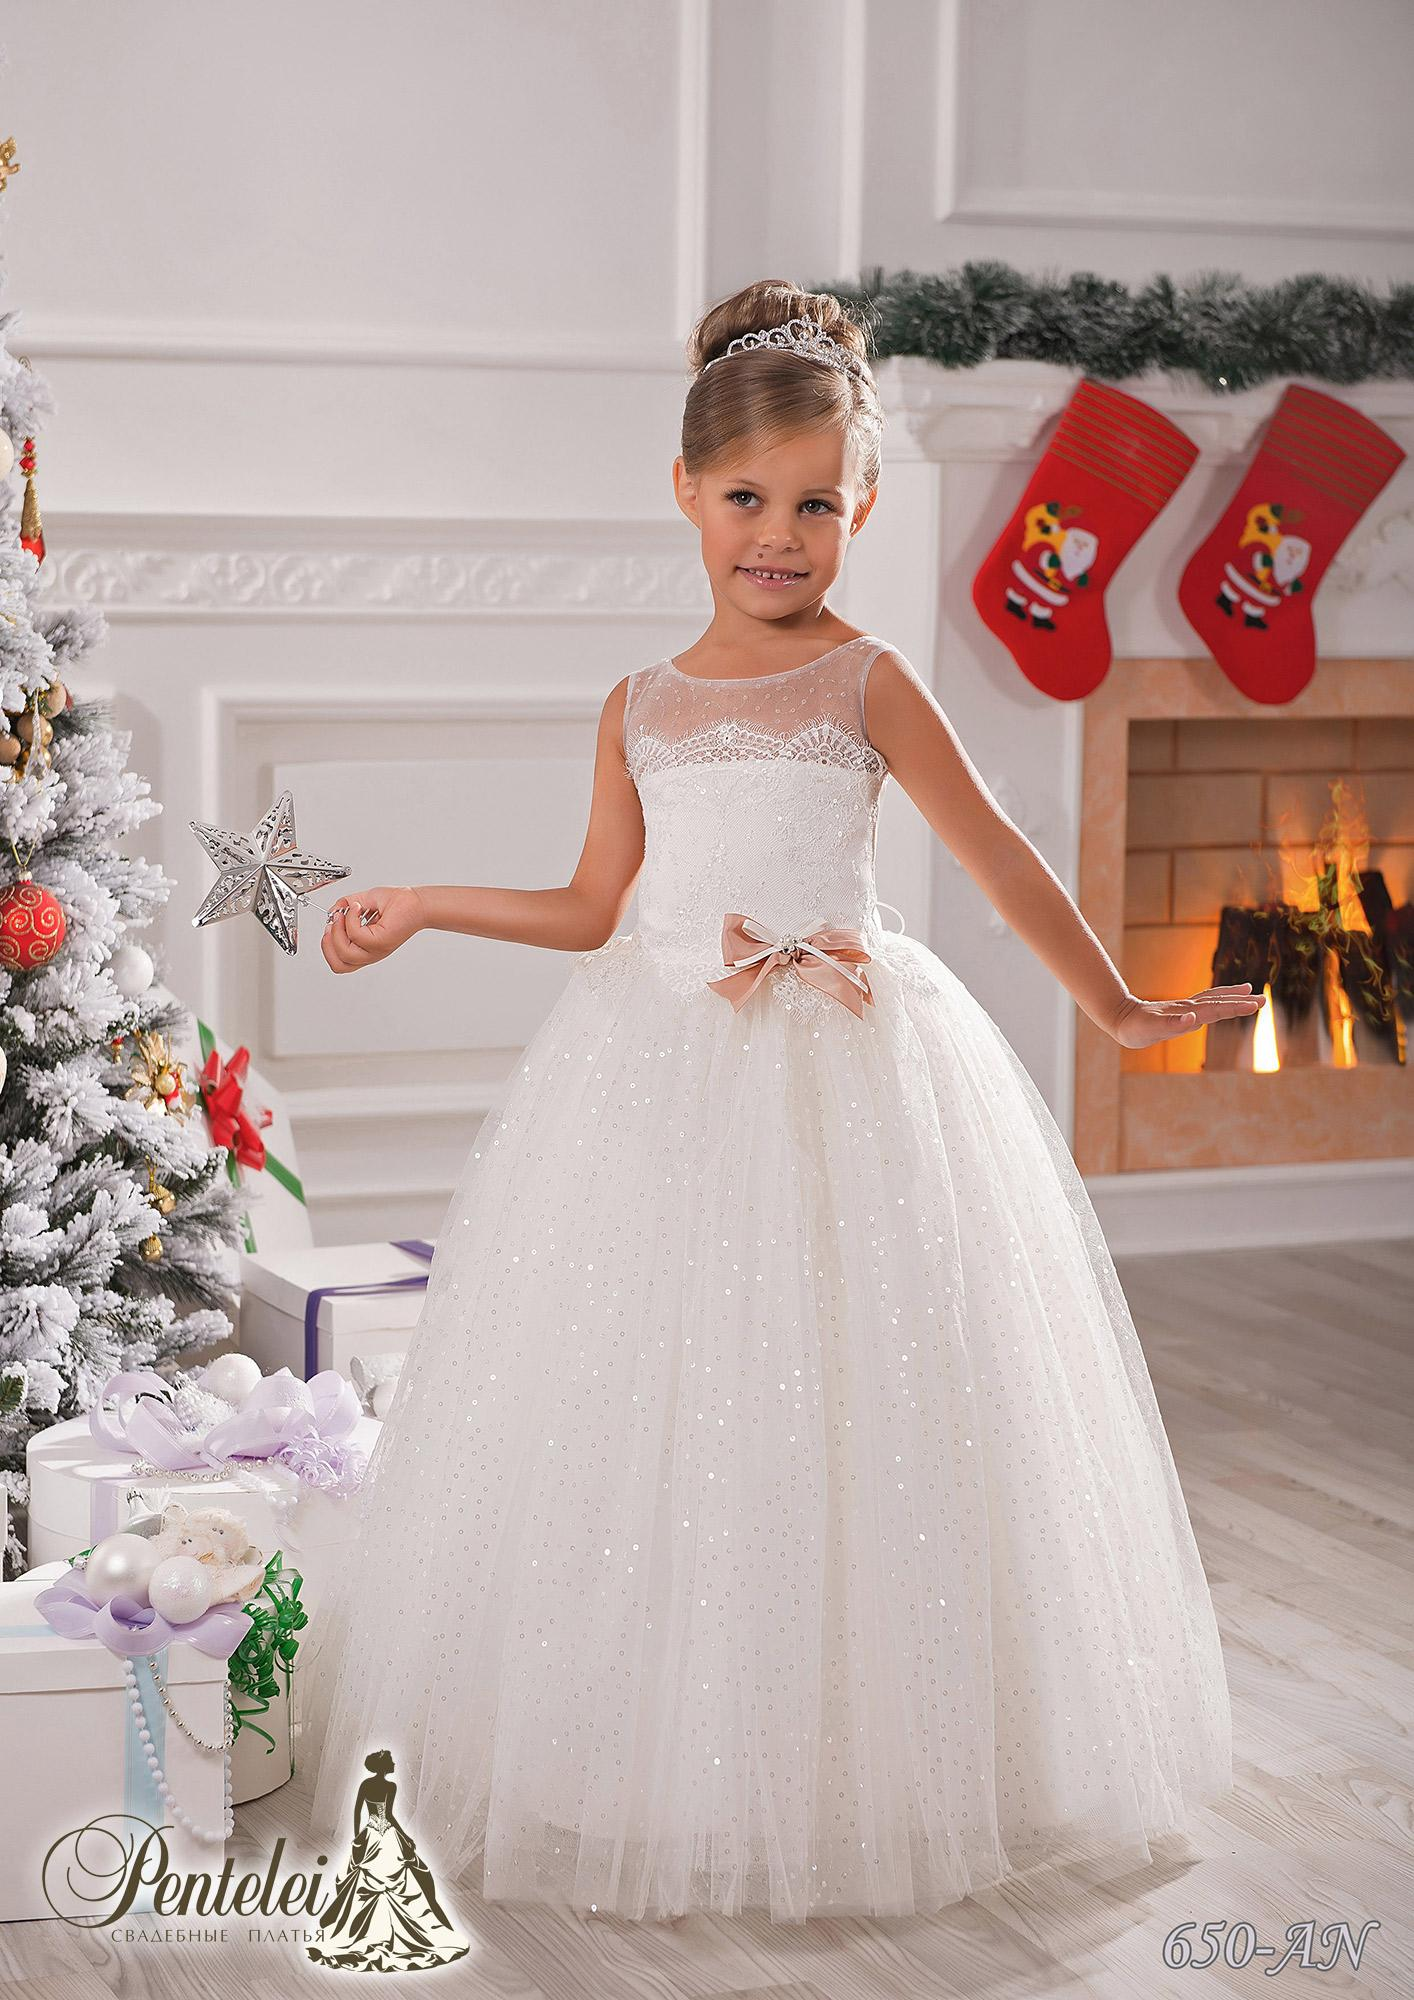 wedding dresses for infants photo - 1